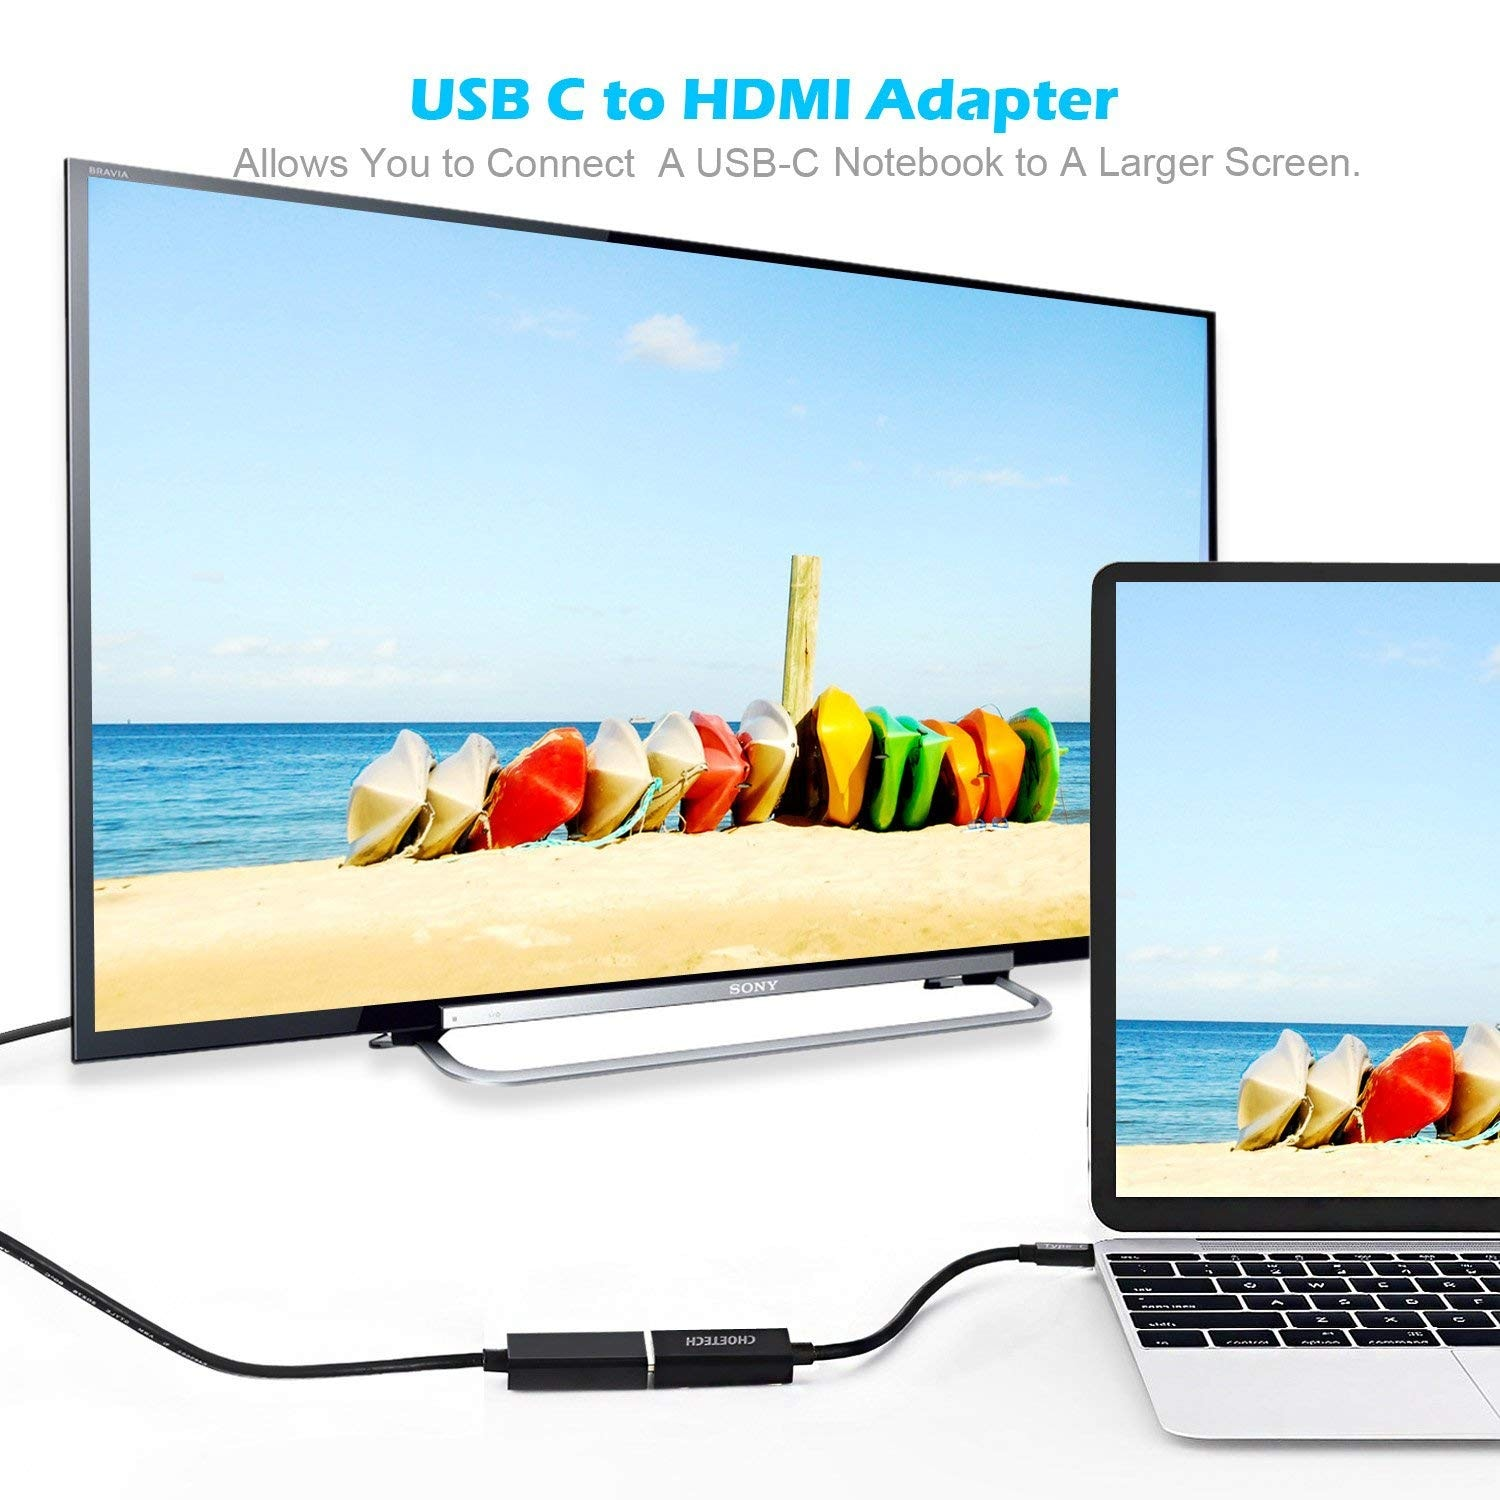 CHOETECH USB C to HDMI Adpater 4K@30Hz 1080P Thunderbolt 3 Compatible for MacBook Pro - 6